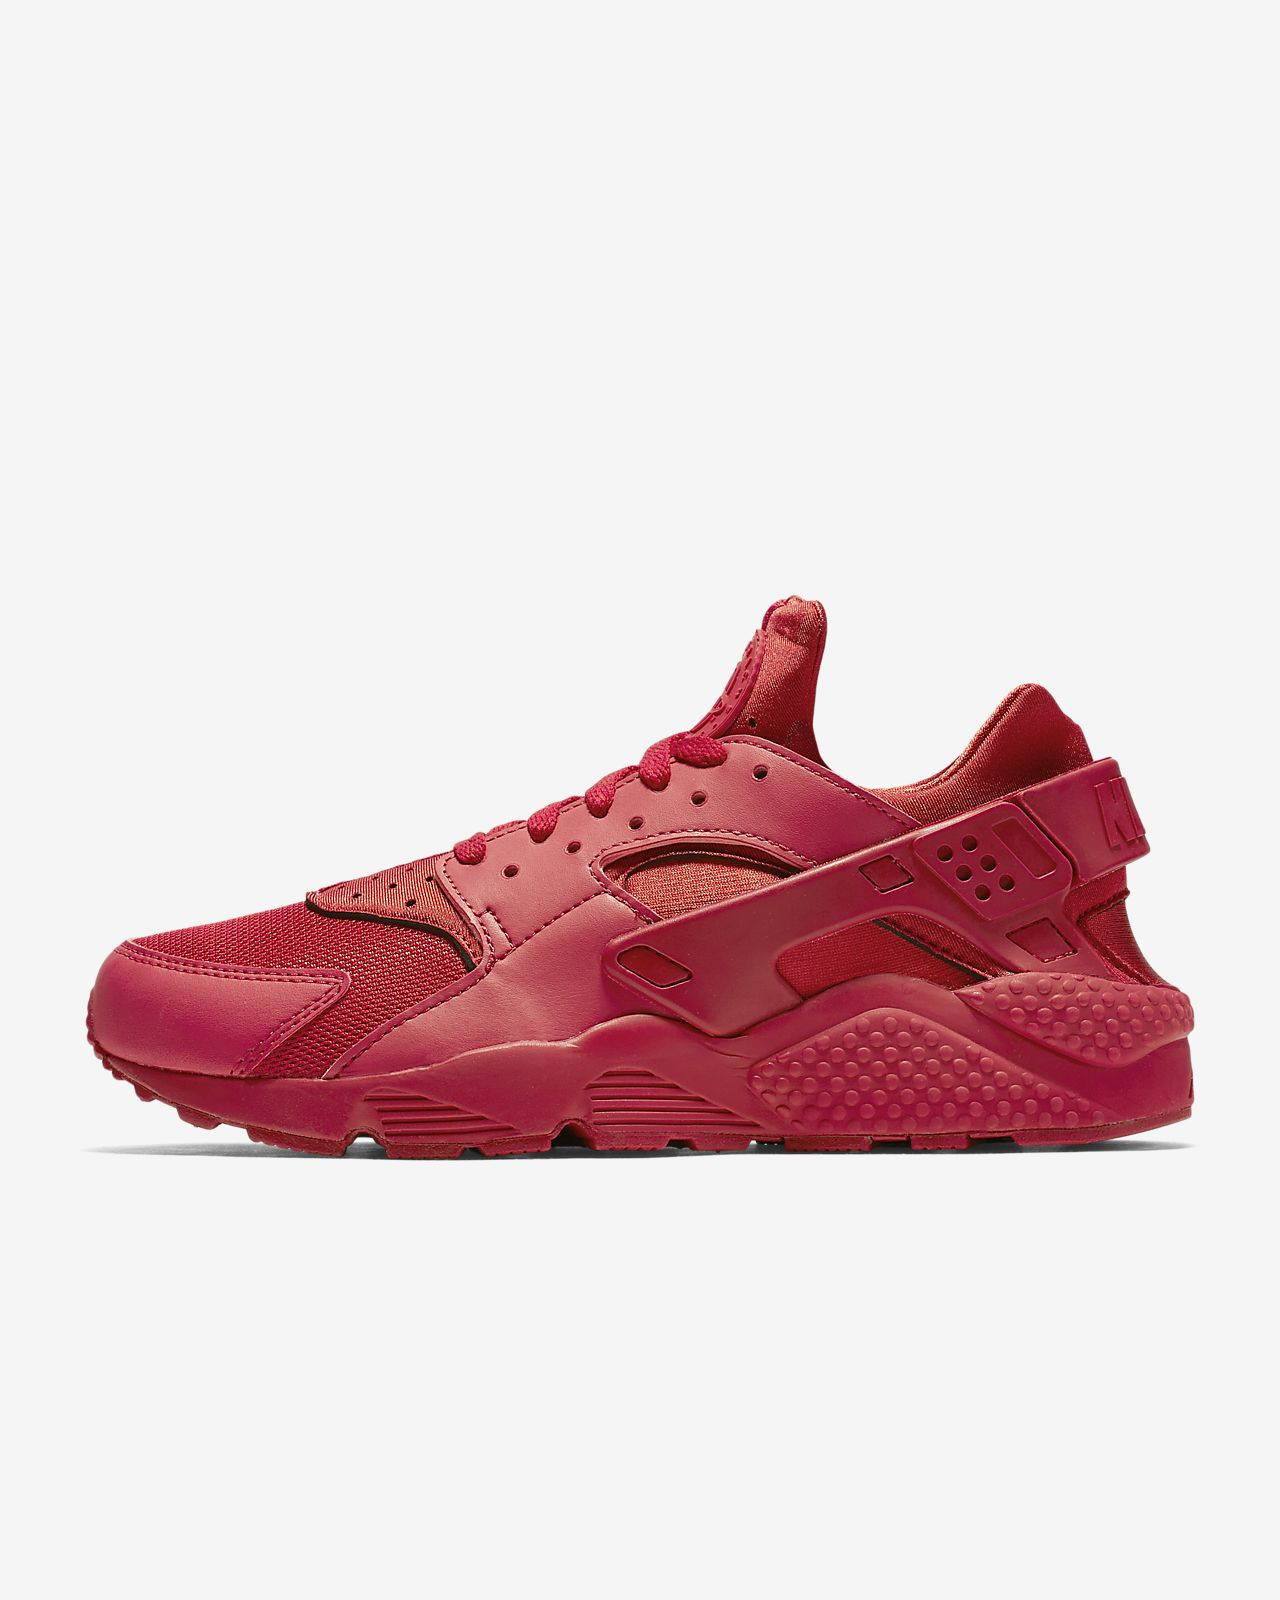 new product 3b647 2deb4 ... Nike Air Huarache Men s Shoe